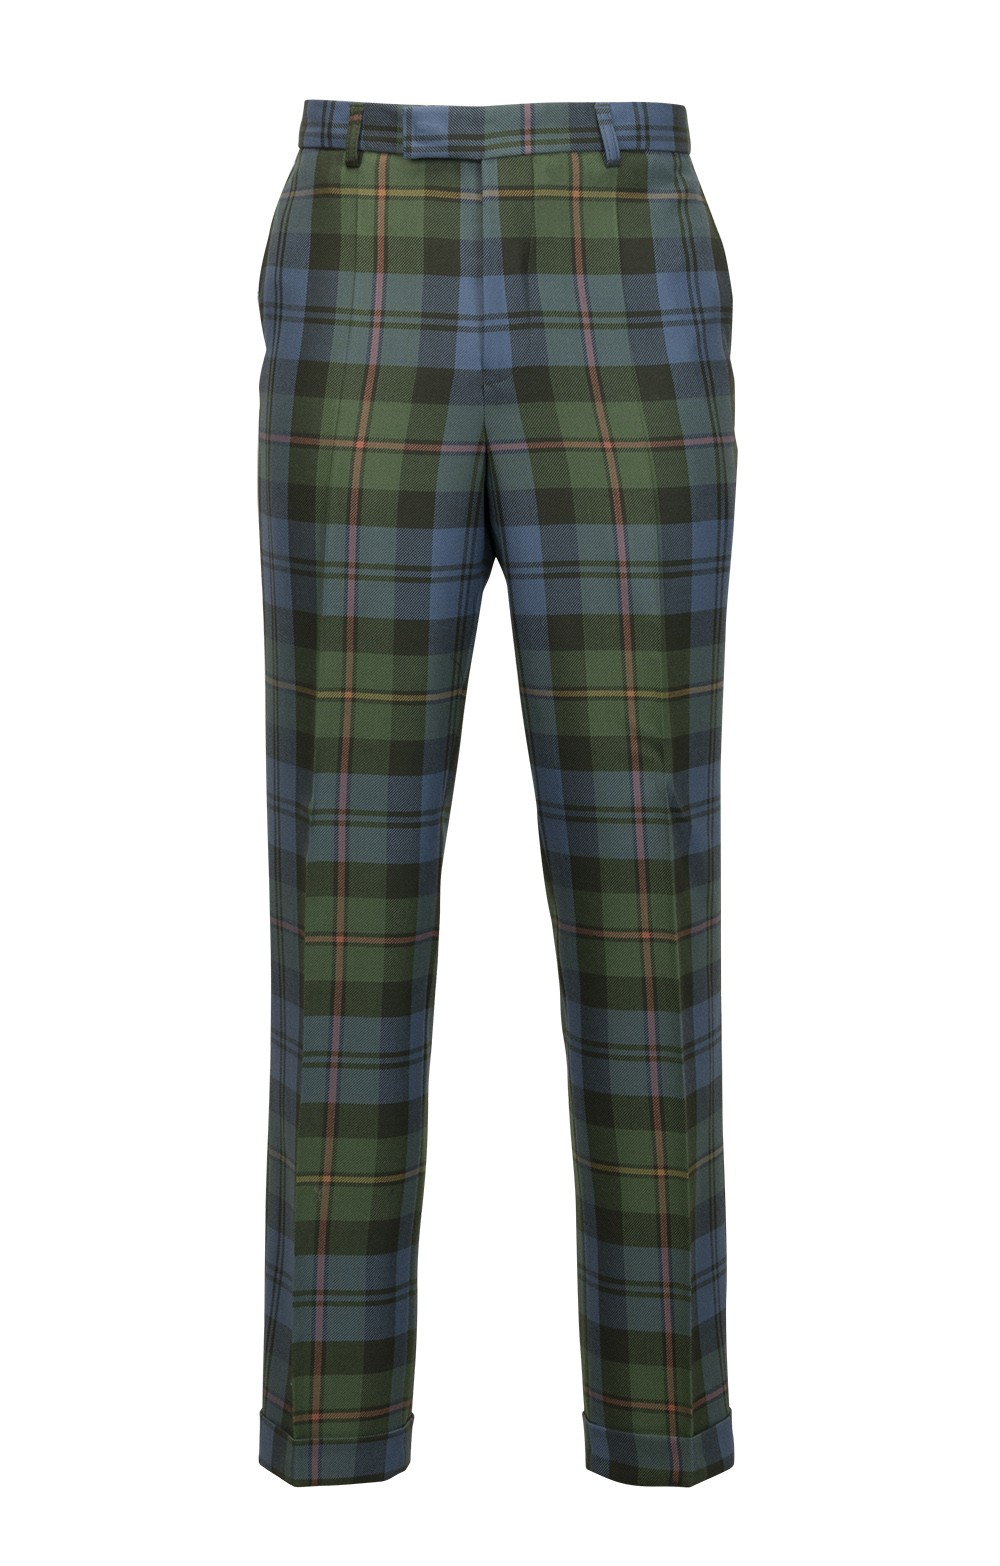 extremely unique speical offer enjoy discount price Plaid Trousers